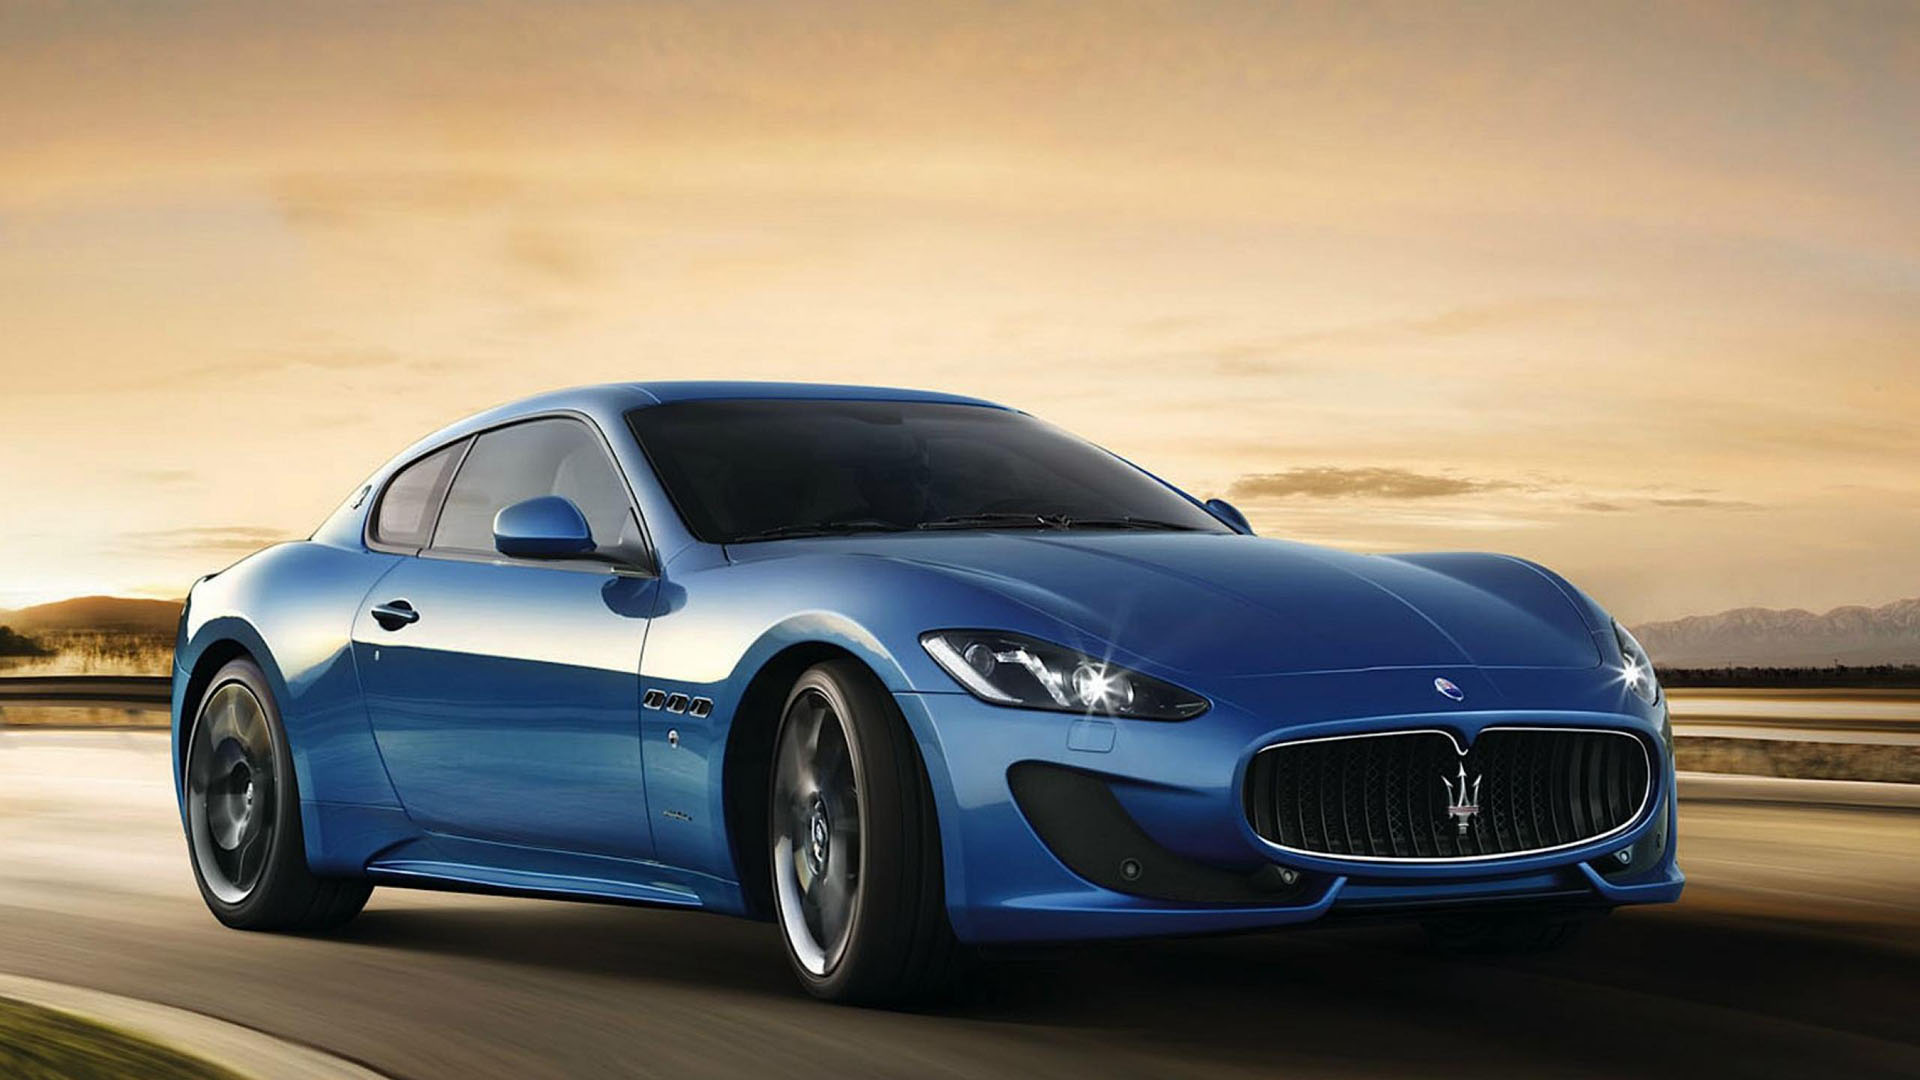 Maserati Wallpapers Pictures Images 1920x1080